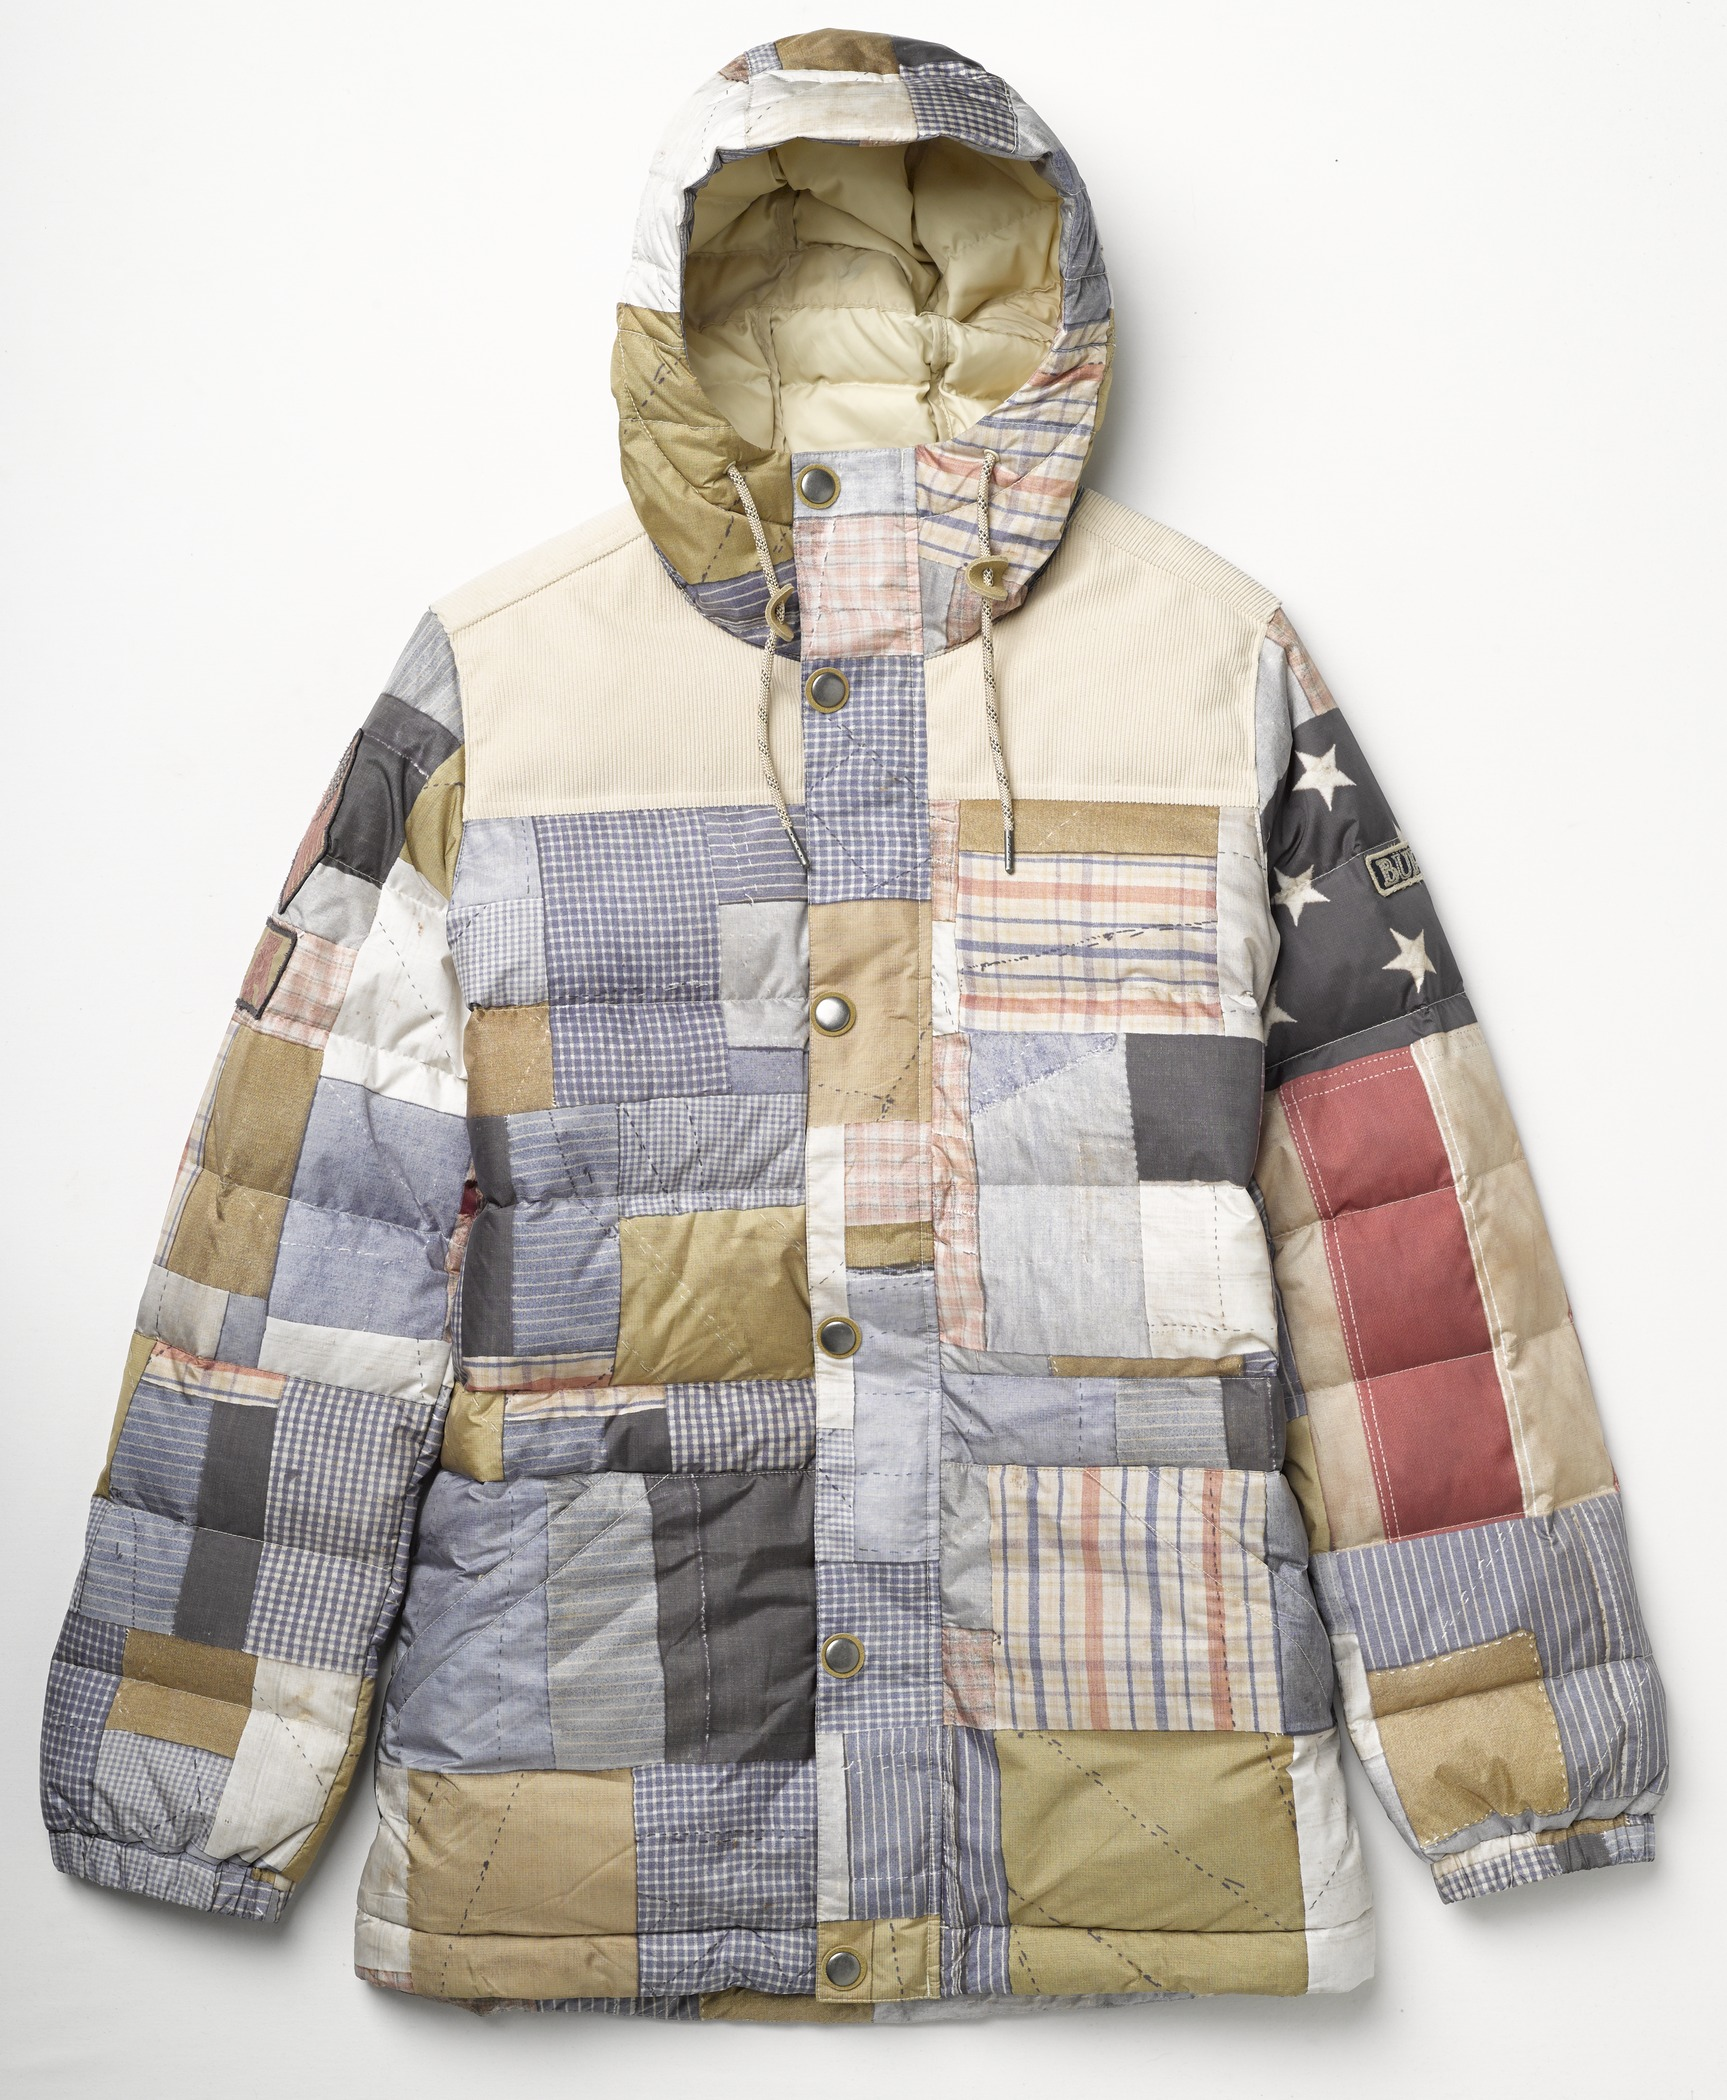 Shop the best selection of men's snowboard jackets at trickytrydown2.tk, where you'll find premium outdoor gear and clothing and experts to guide you through selection.